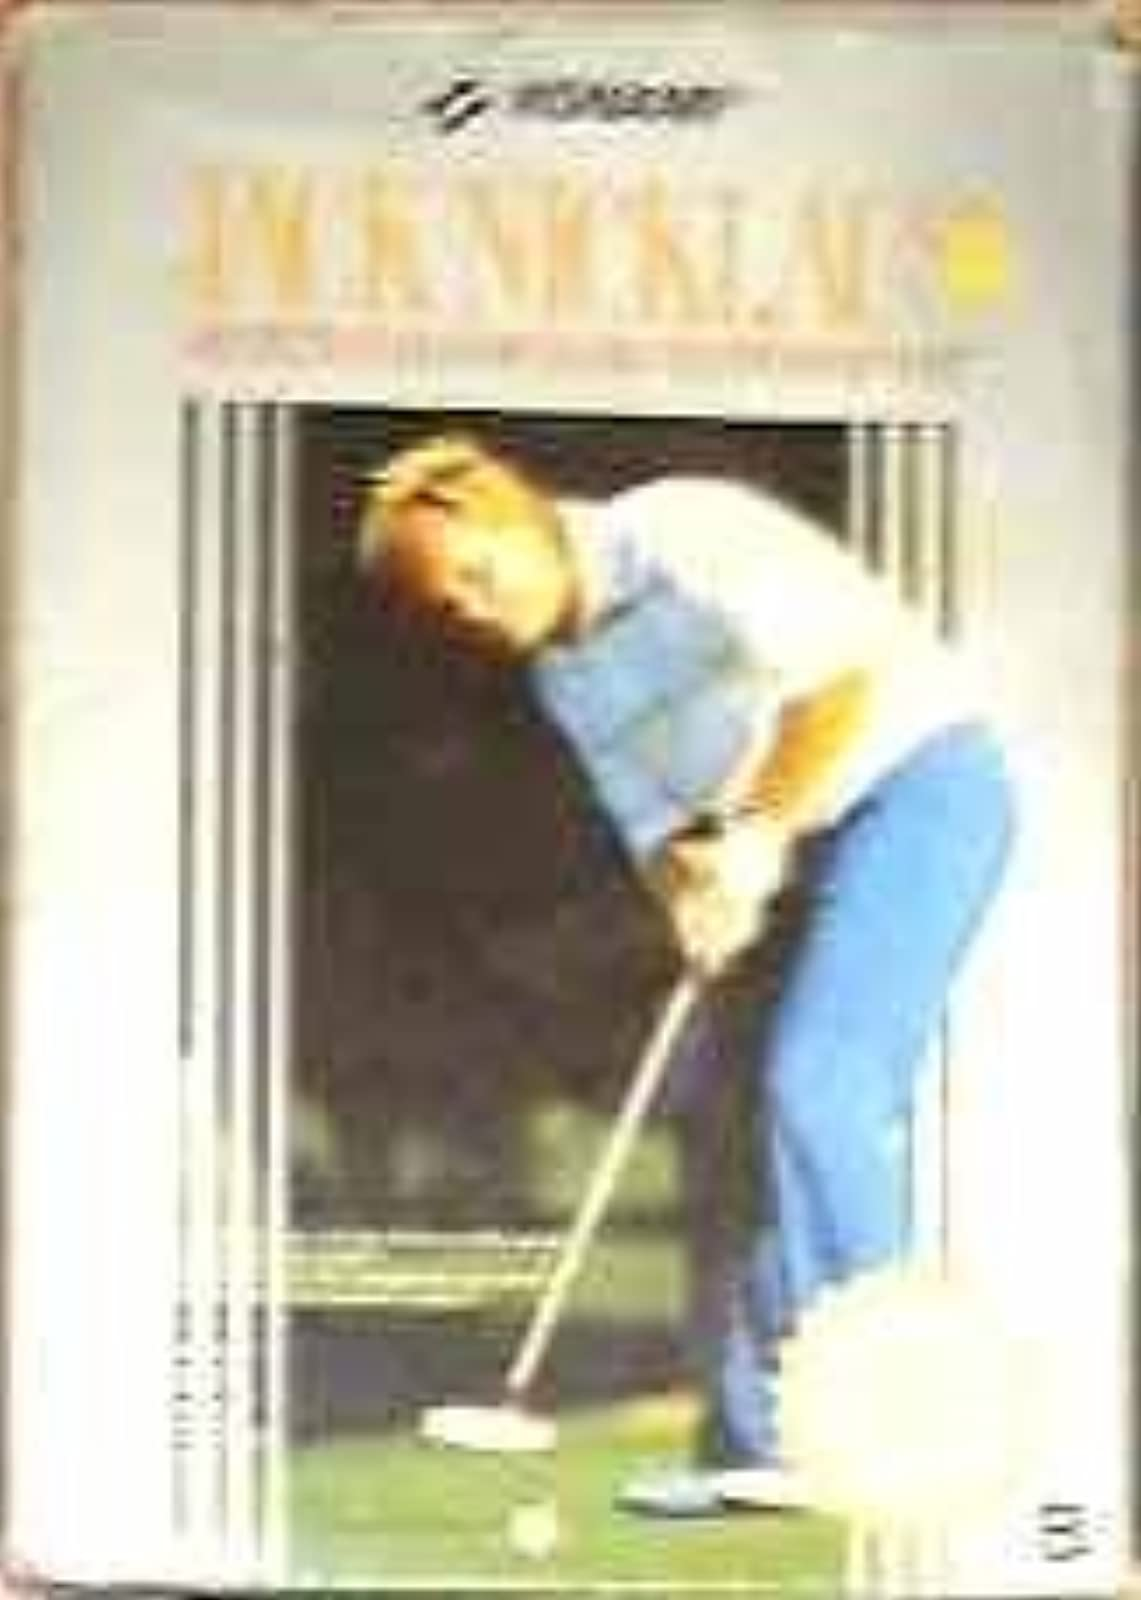 Jack Nicklaus Golf Nintendo NES For Nintendo NES Vintage